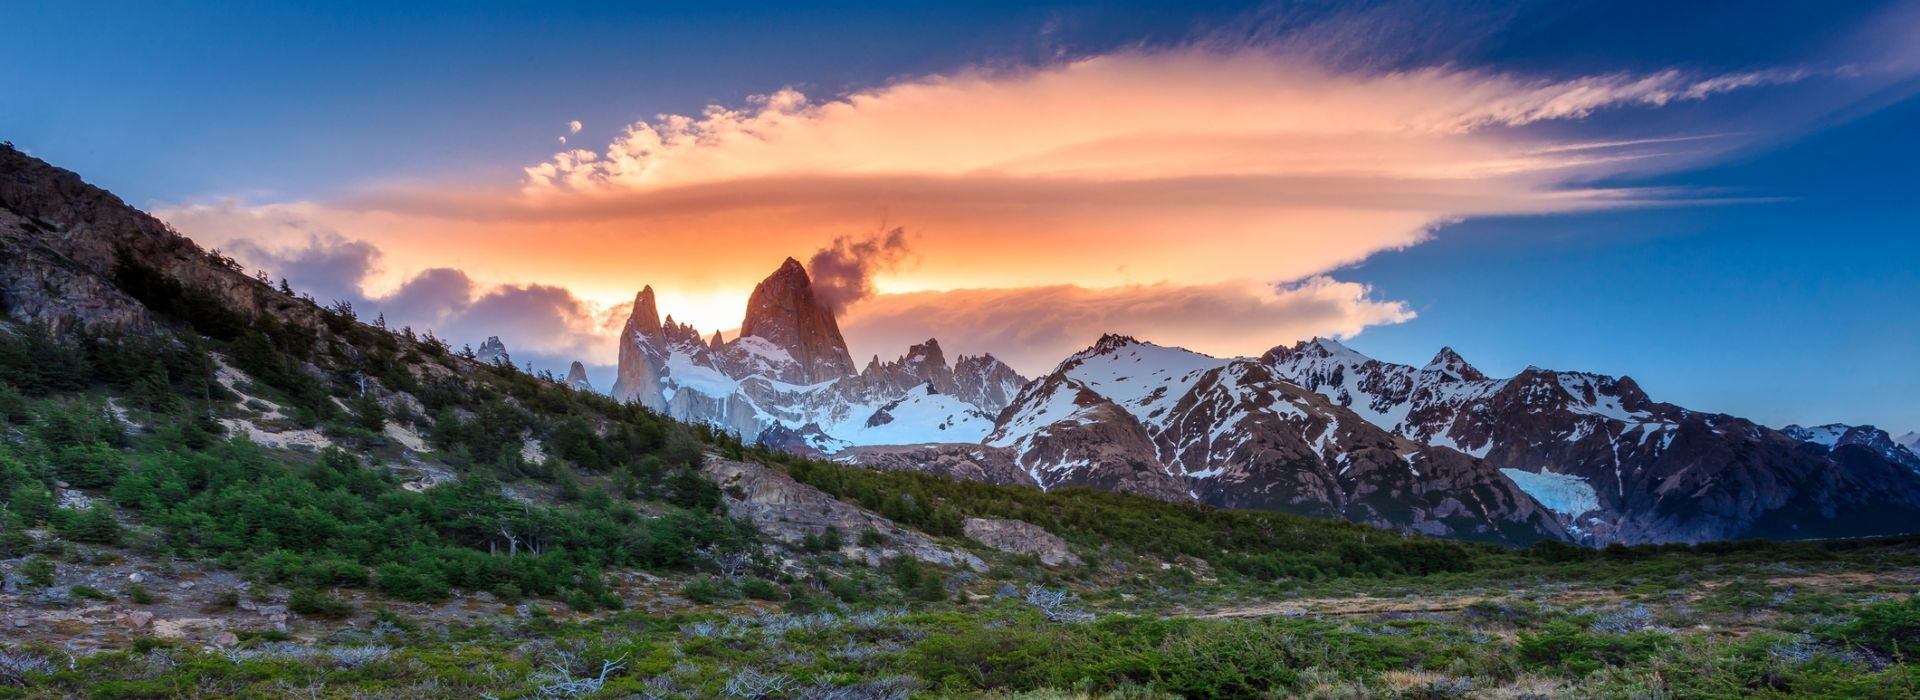 Food, wine, events and nightlife Tours in El Calafate